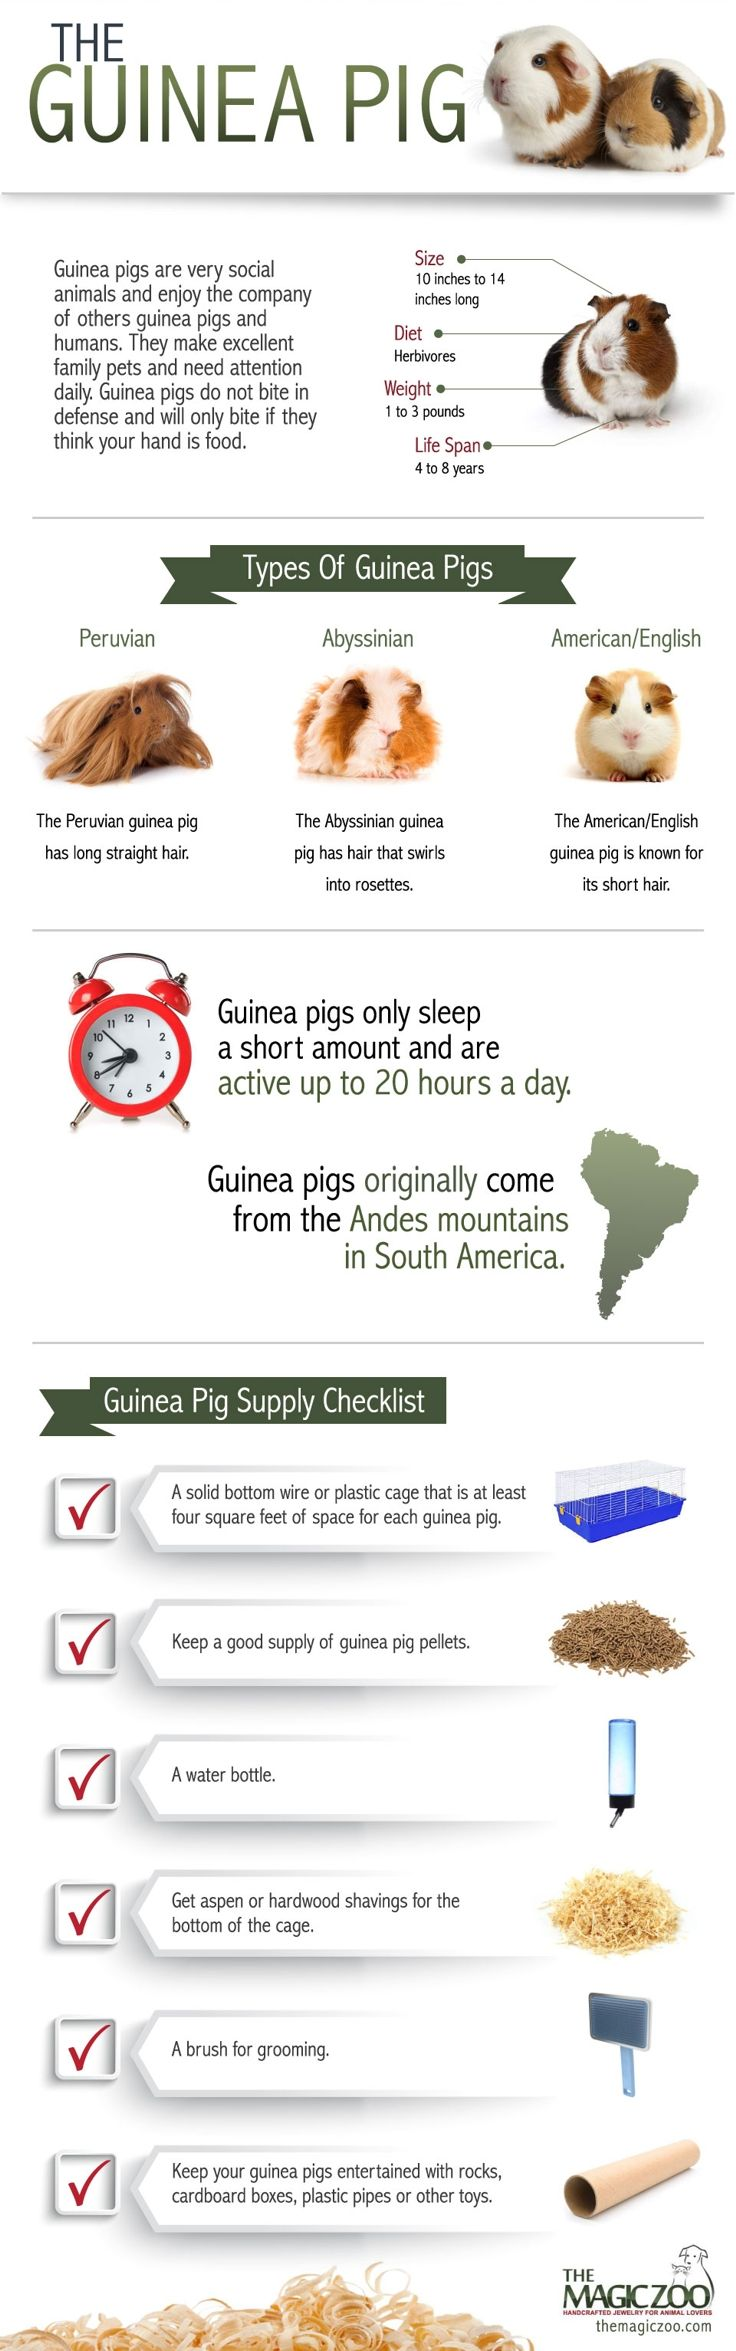 Here's some guinea pig trivia from one of my favorite animals. They inspire me as  the guinea pig artist over at http://www.themagiczoo.com/guinea-pig-jewelry.html